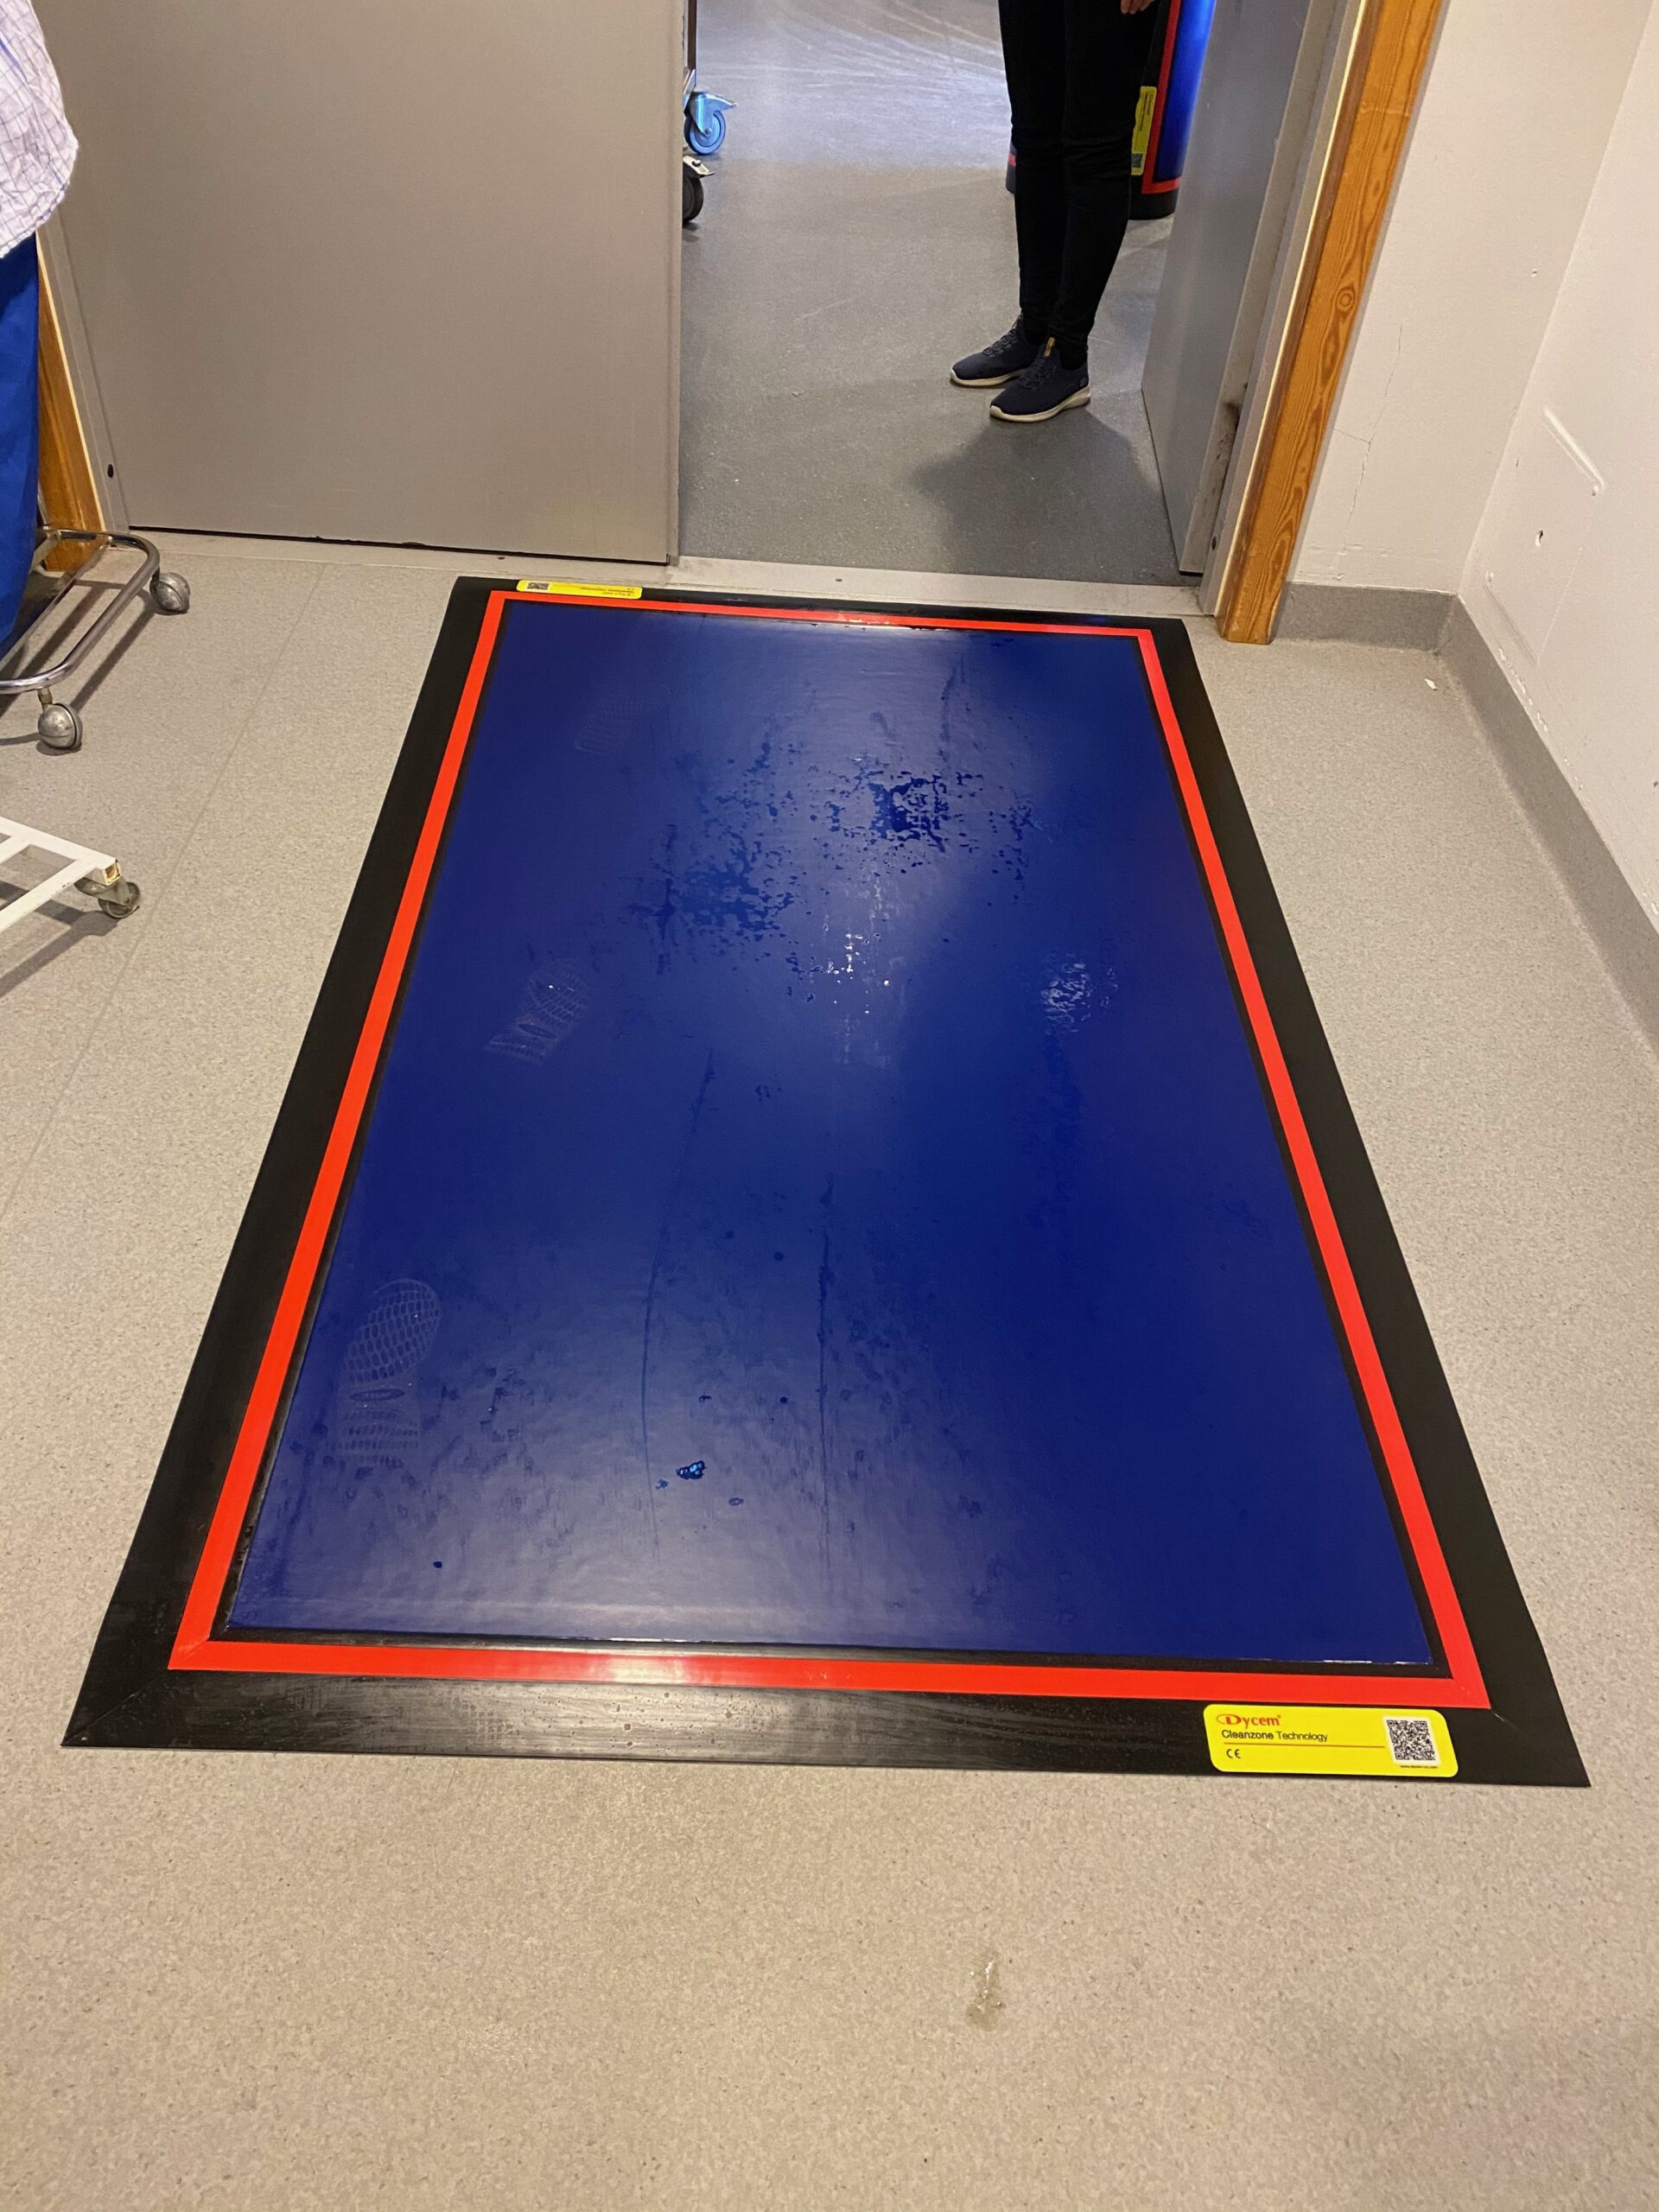 Decontamination floor mats for cleanrooms 8